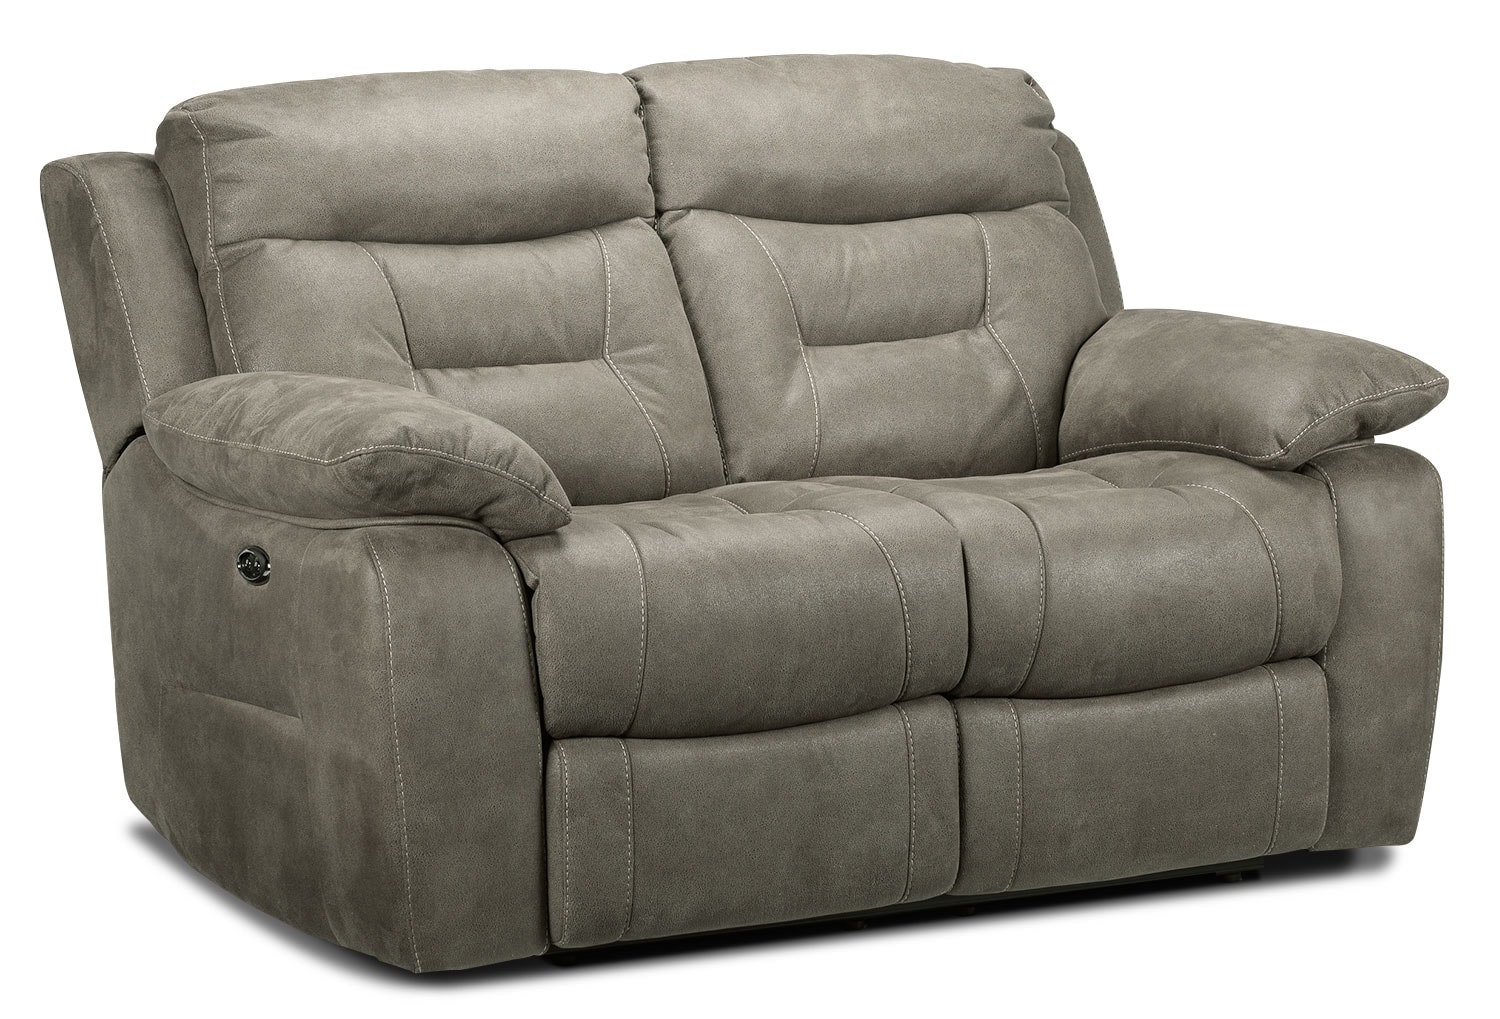 Living Room Furniture - Collins Power Reclining Loveseat - Silver